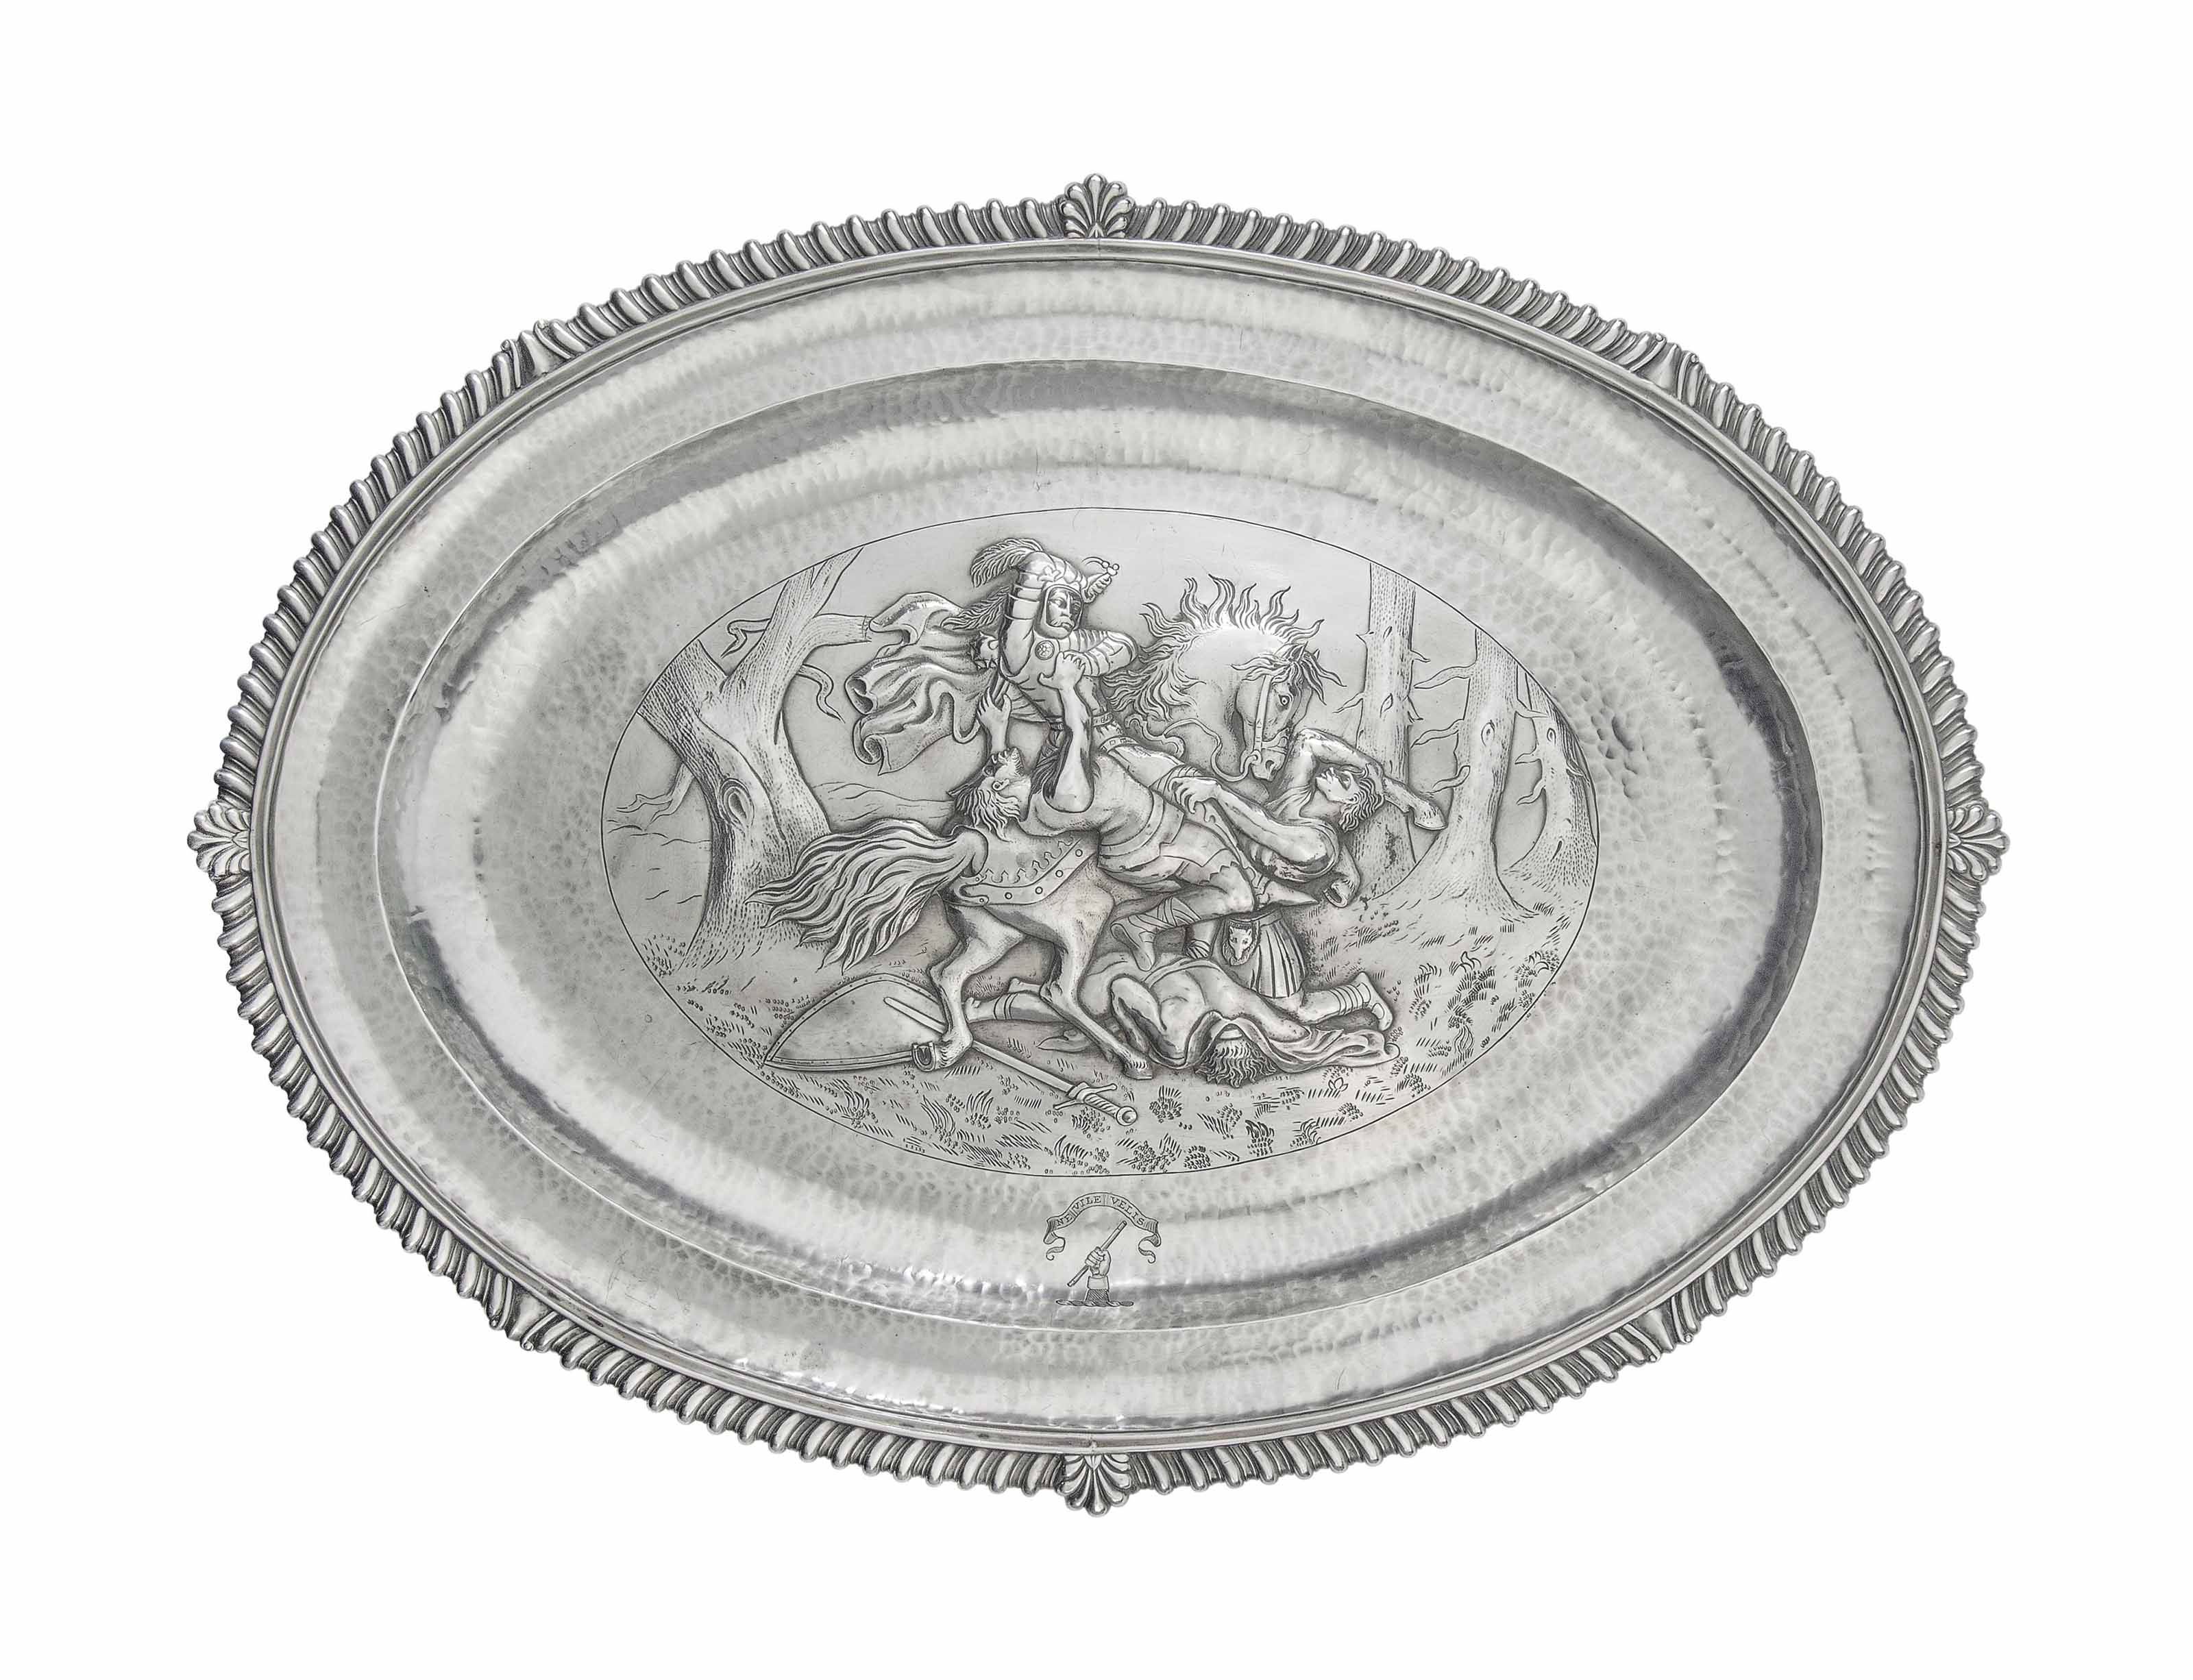 A GEORGE III SILVER MEAT DISH OF EXCEPTIONALLY HEAVY GAUGE